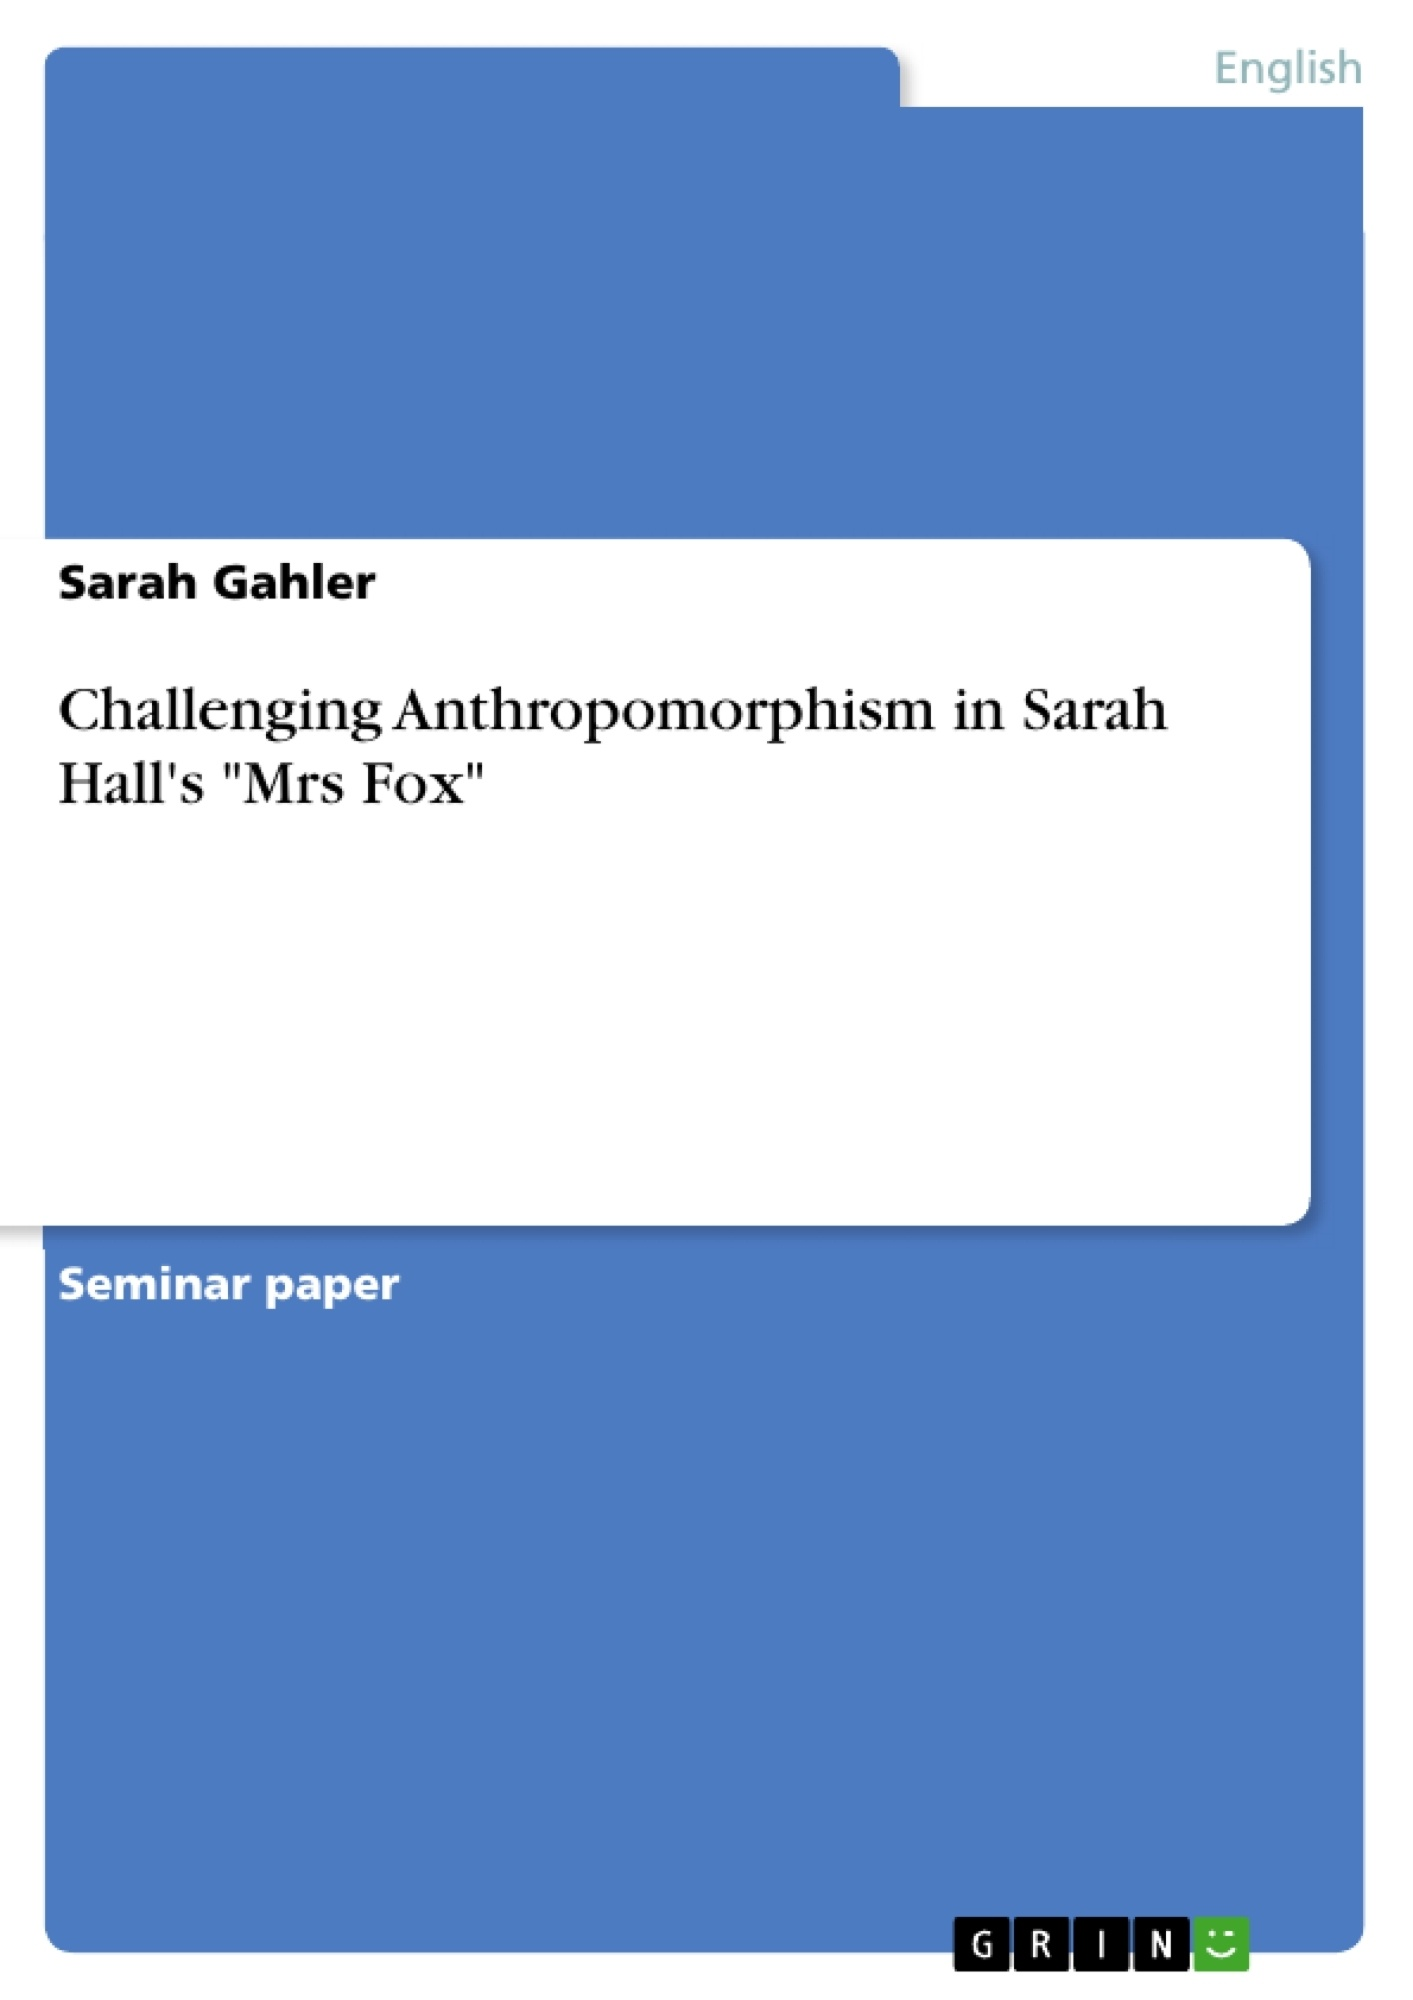 """Title: Challenging Anthropomorphism in Sarah Hall's """"Mrs Fox"""""""